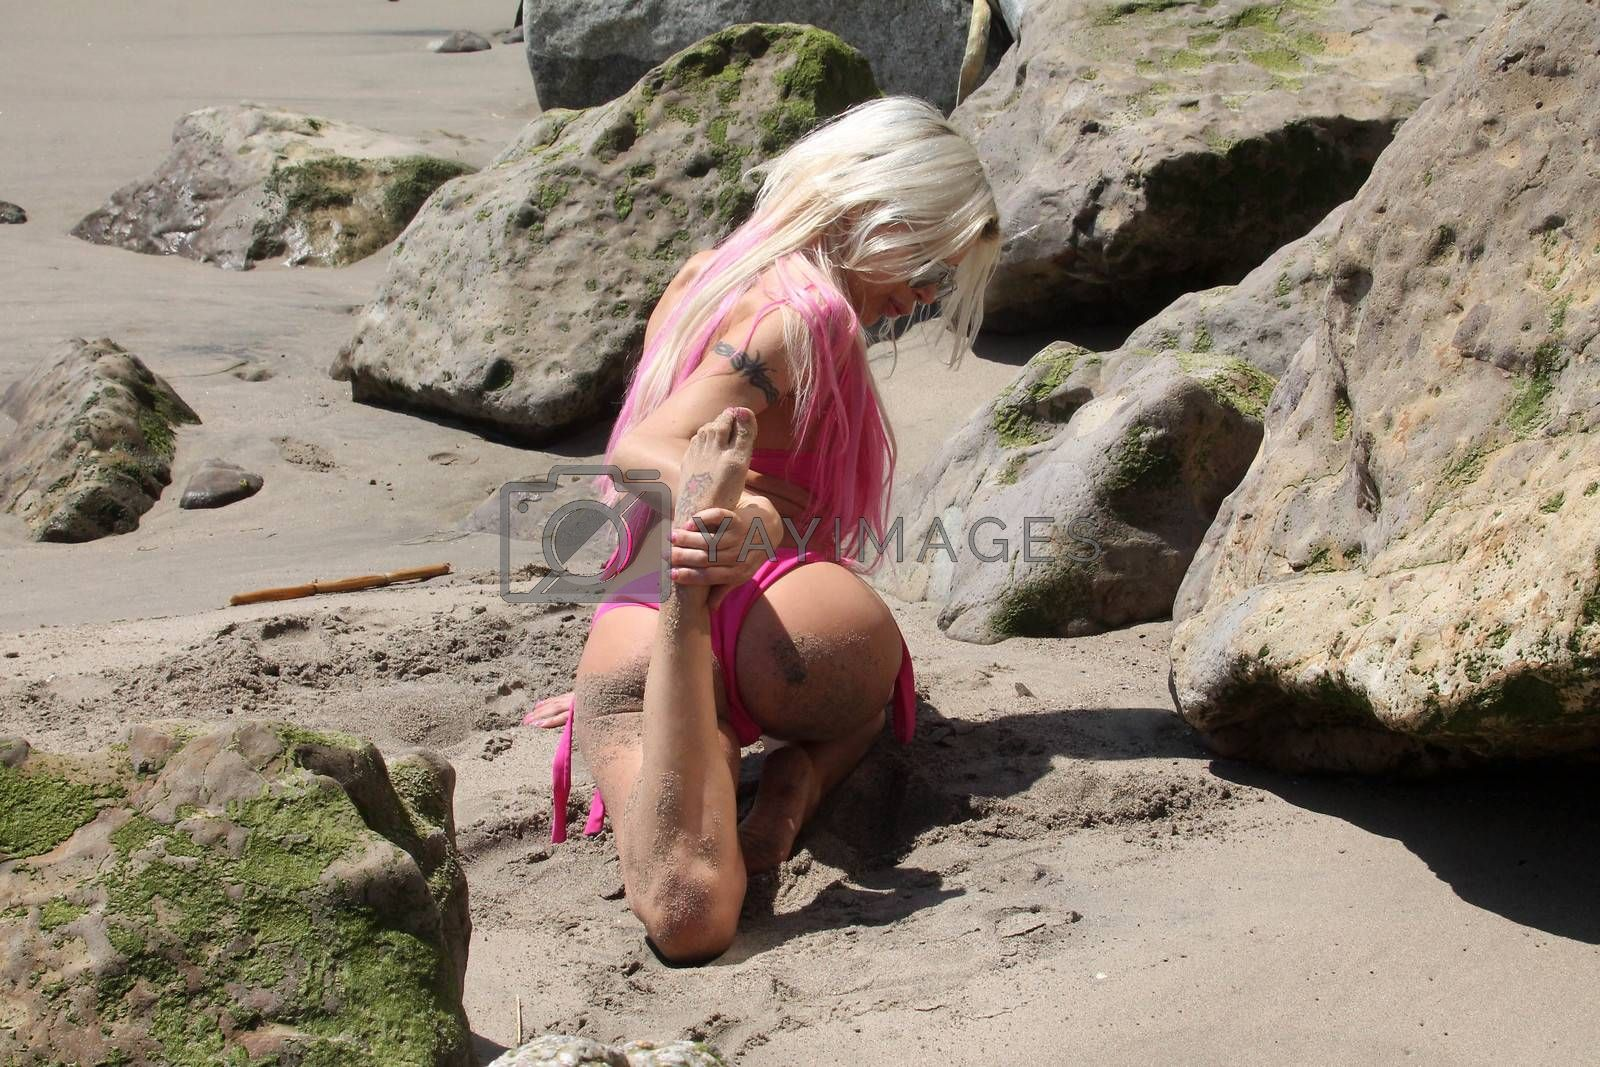 """Frenchy Morgan the """"Celebrity Big Brother"""" Star is spotted doing yoga and karate on the beach while wearing a tiny pink bikini, Malibu, CA 04-21-17"""